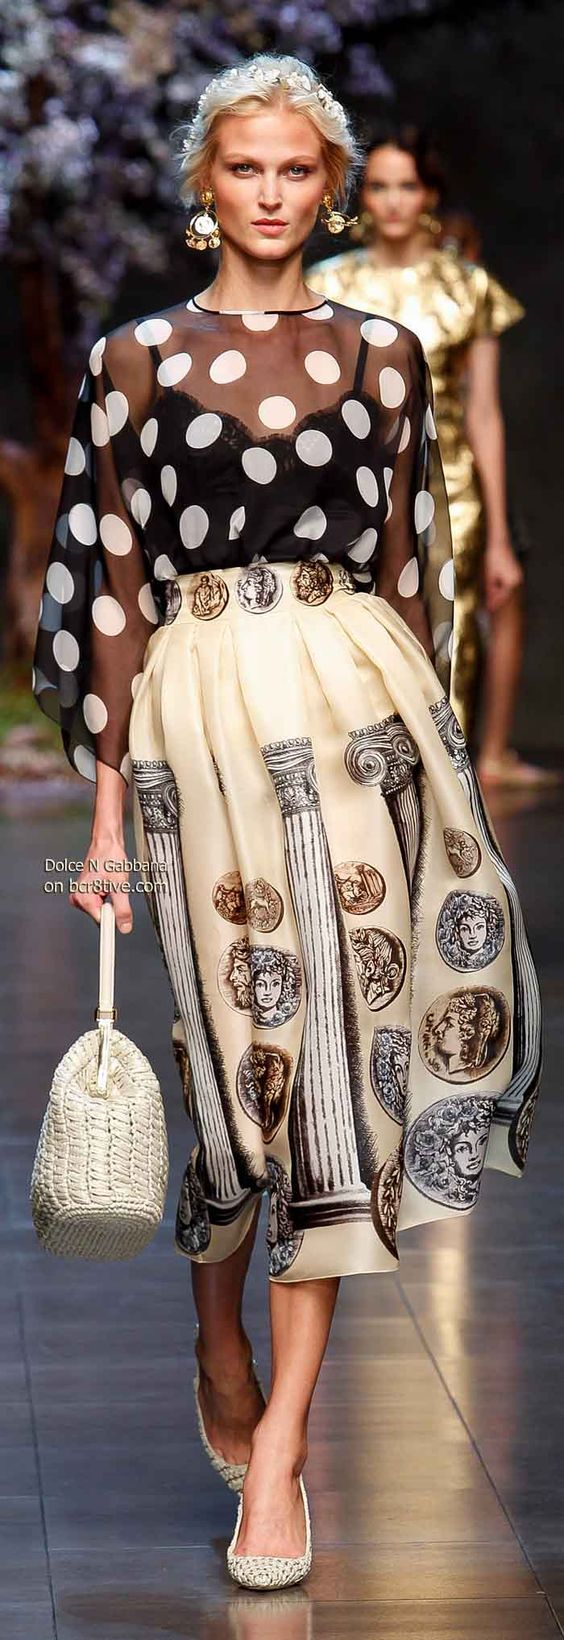 Dolce  Gabbana Spring 2014 Mixed prints and retro glam Flowy silhouette Night out for dinner